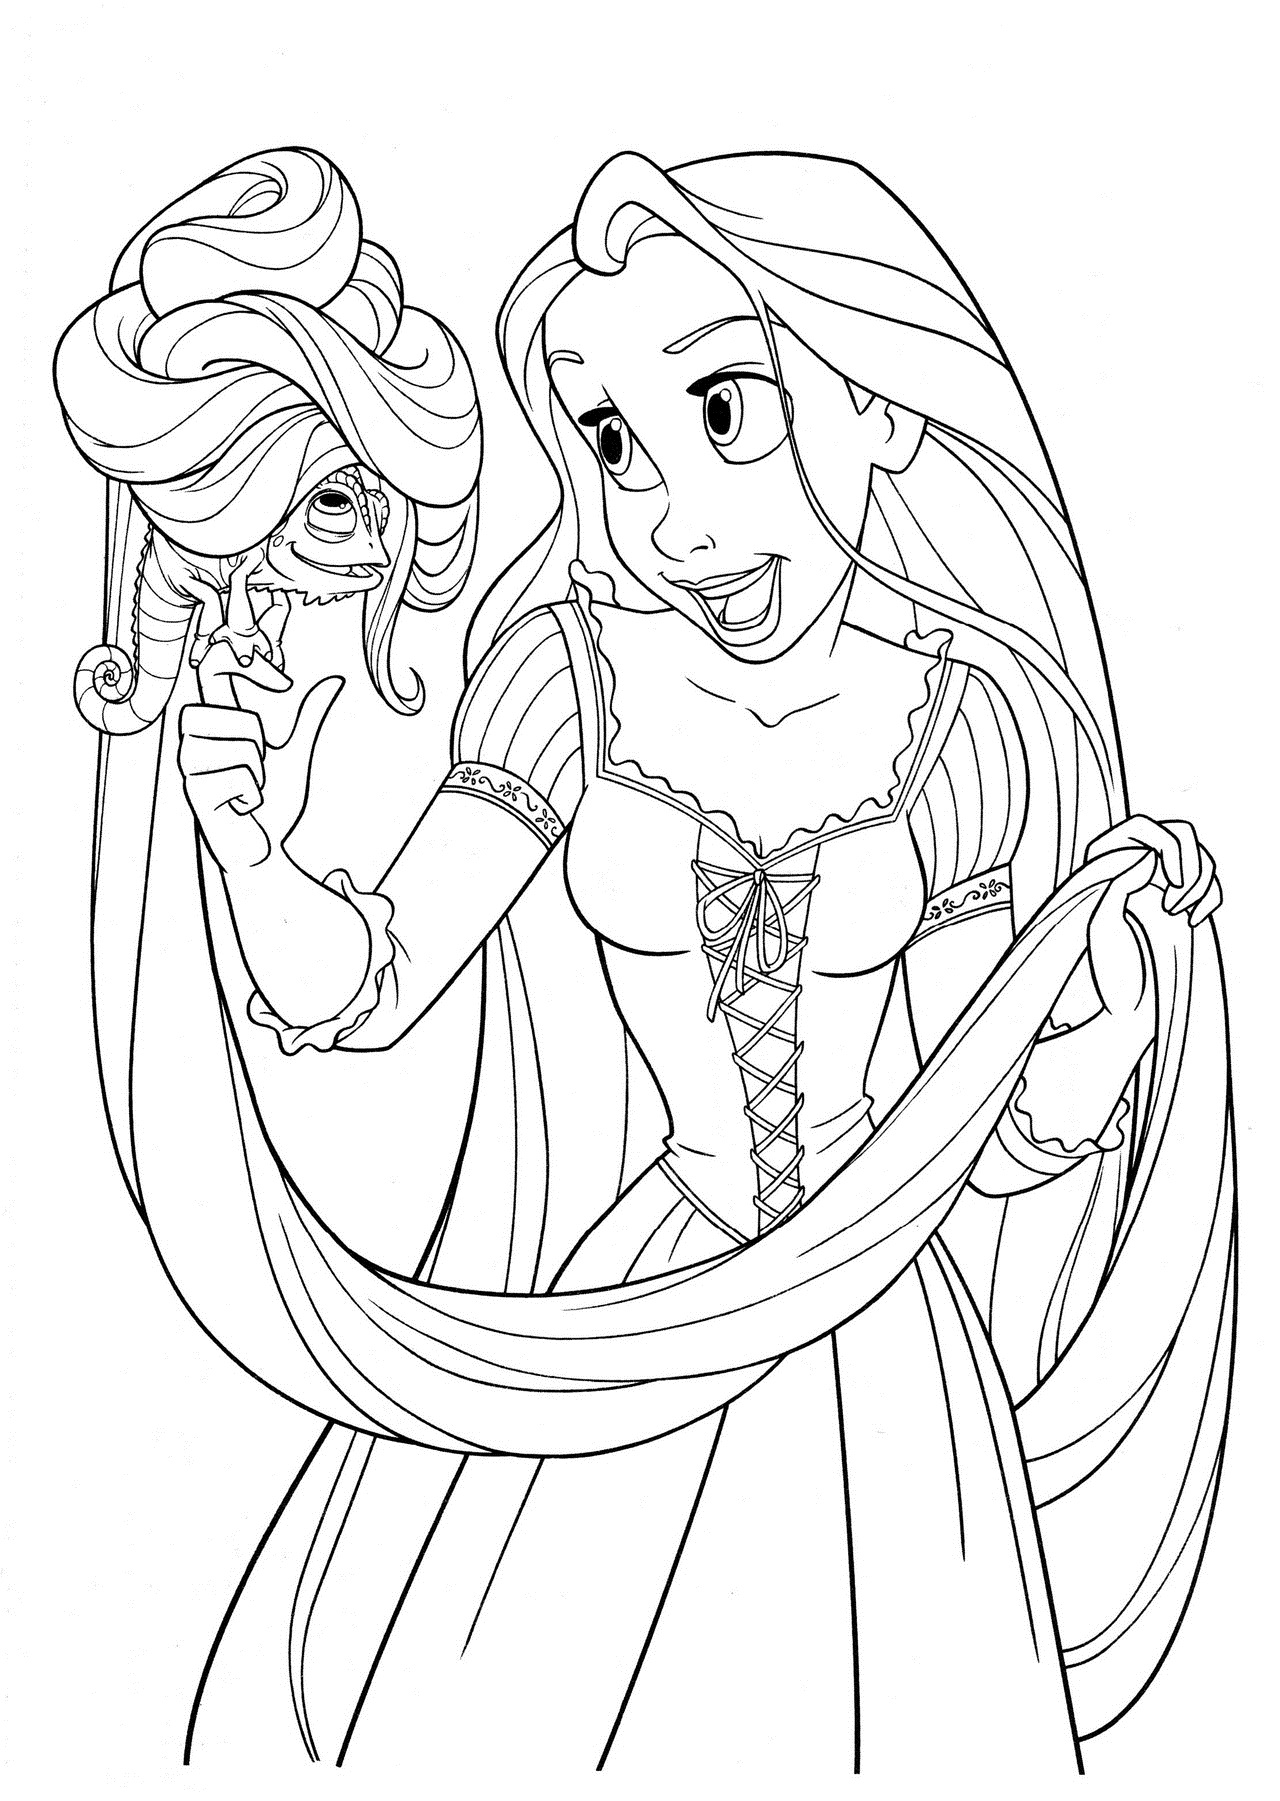 children kids coloring pages free - photo#1